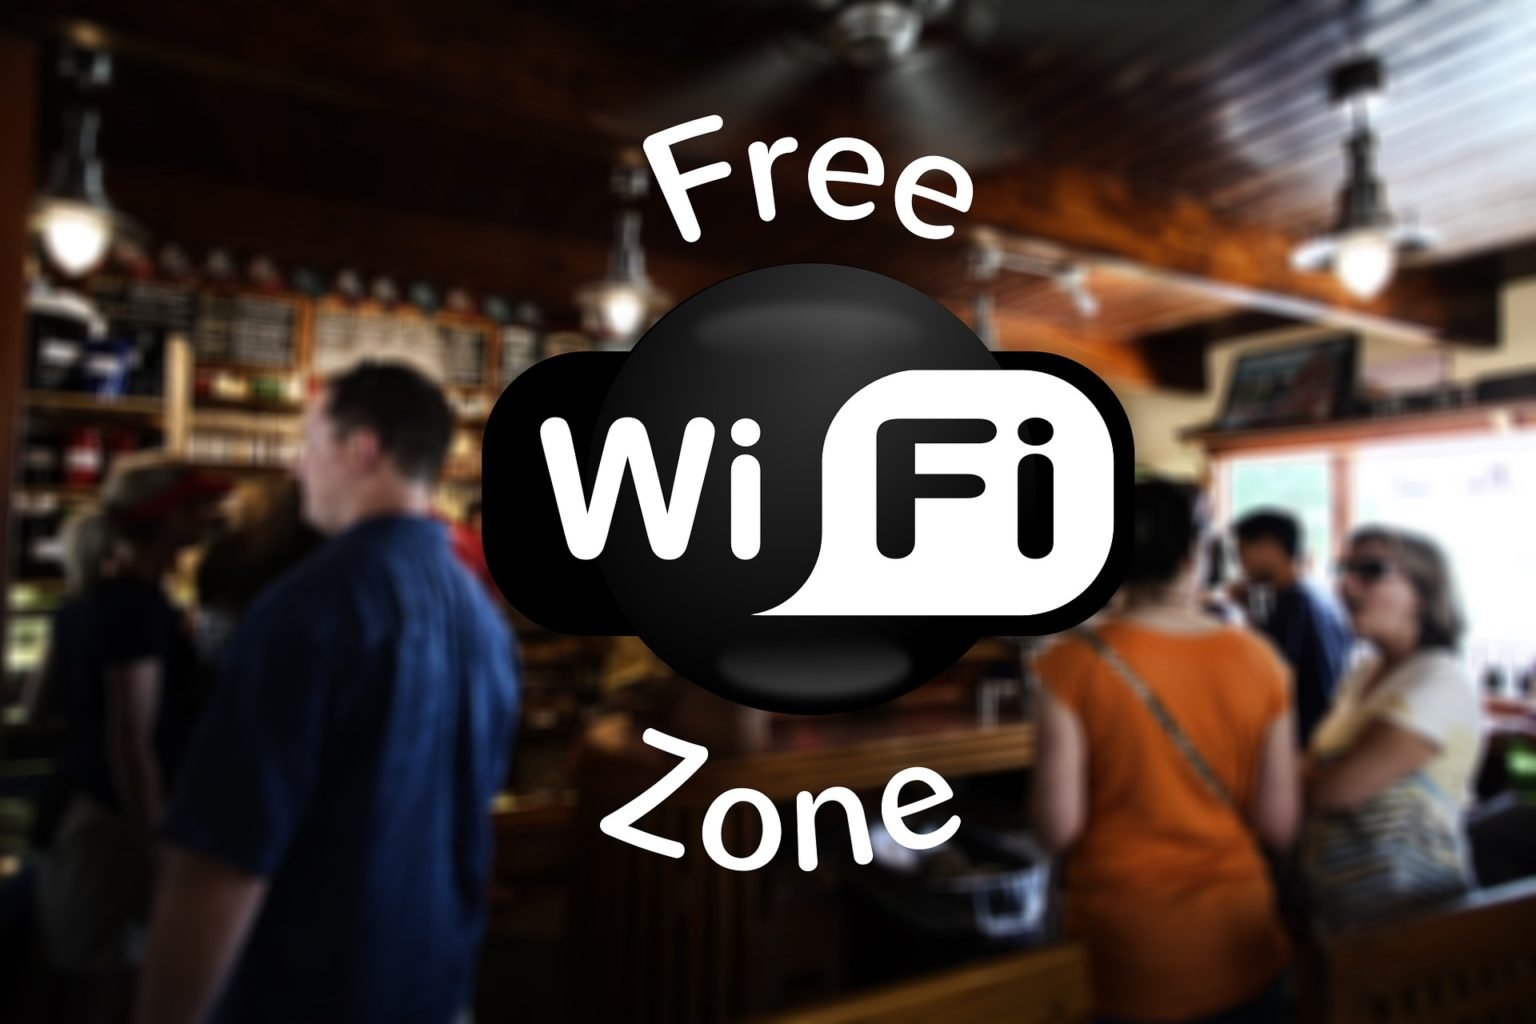 Where to find free WiFi on the road